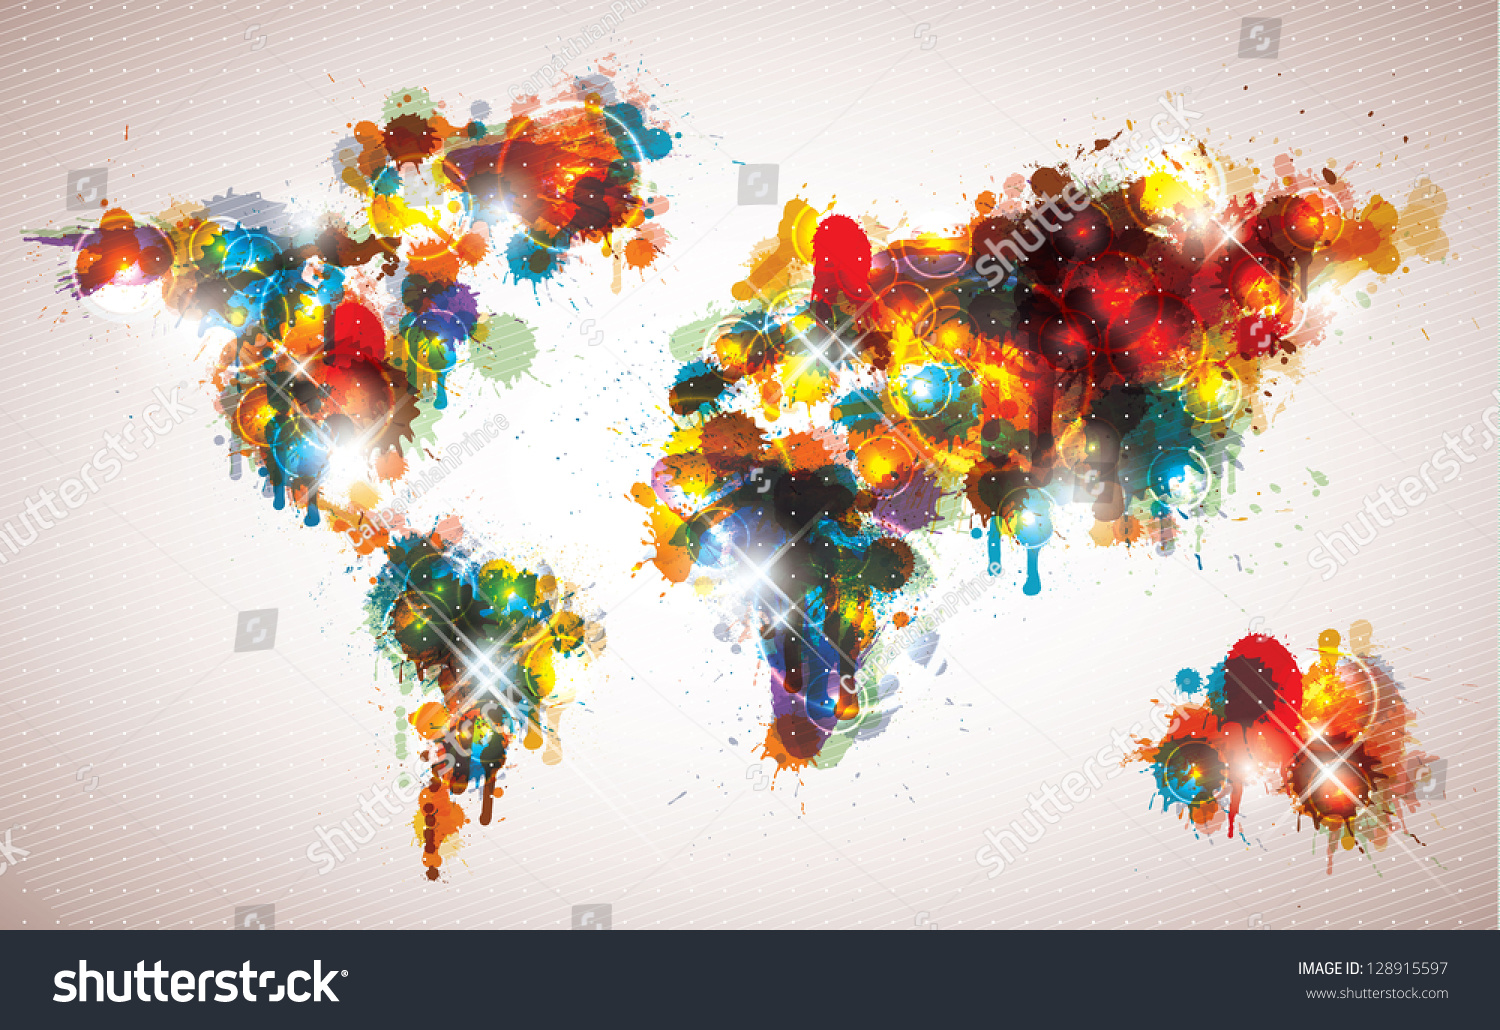 Painterly world map done cool contemporary stock vector 2018 painterly world map done in a cool contemporary color scheme gumiabroncs Gallery